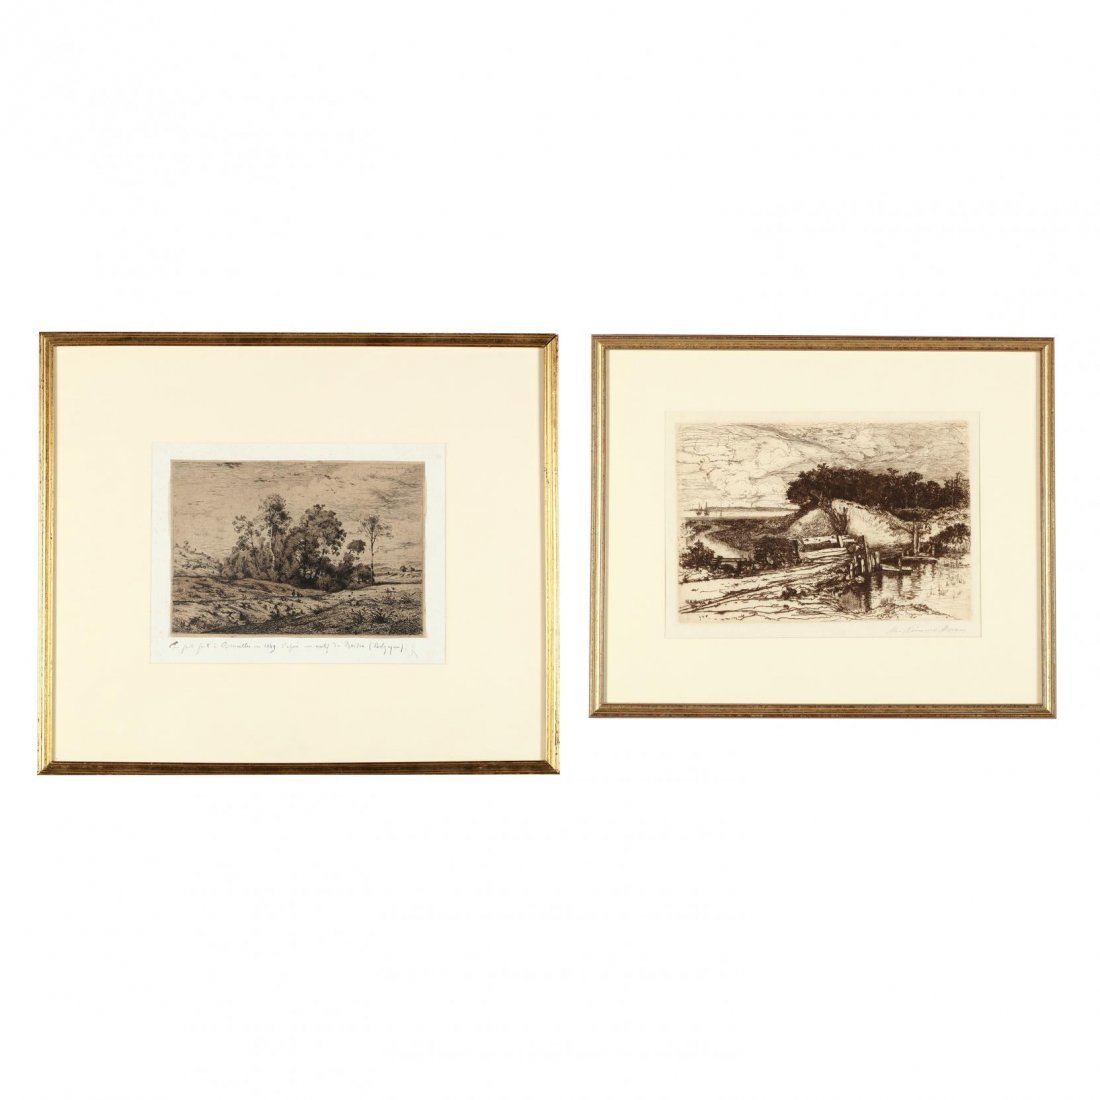 Two 19th-Century Landscapes - Moran and Harpignies